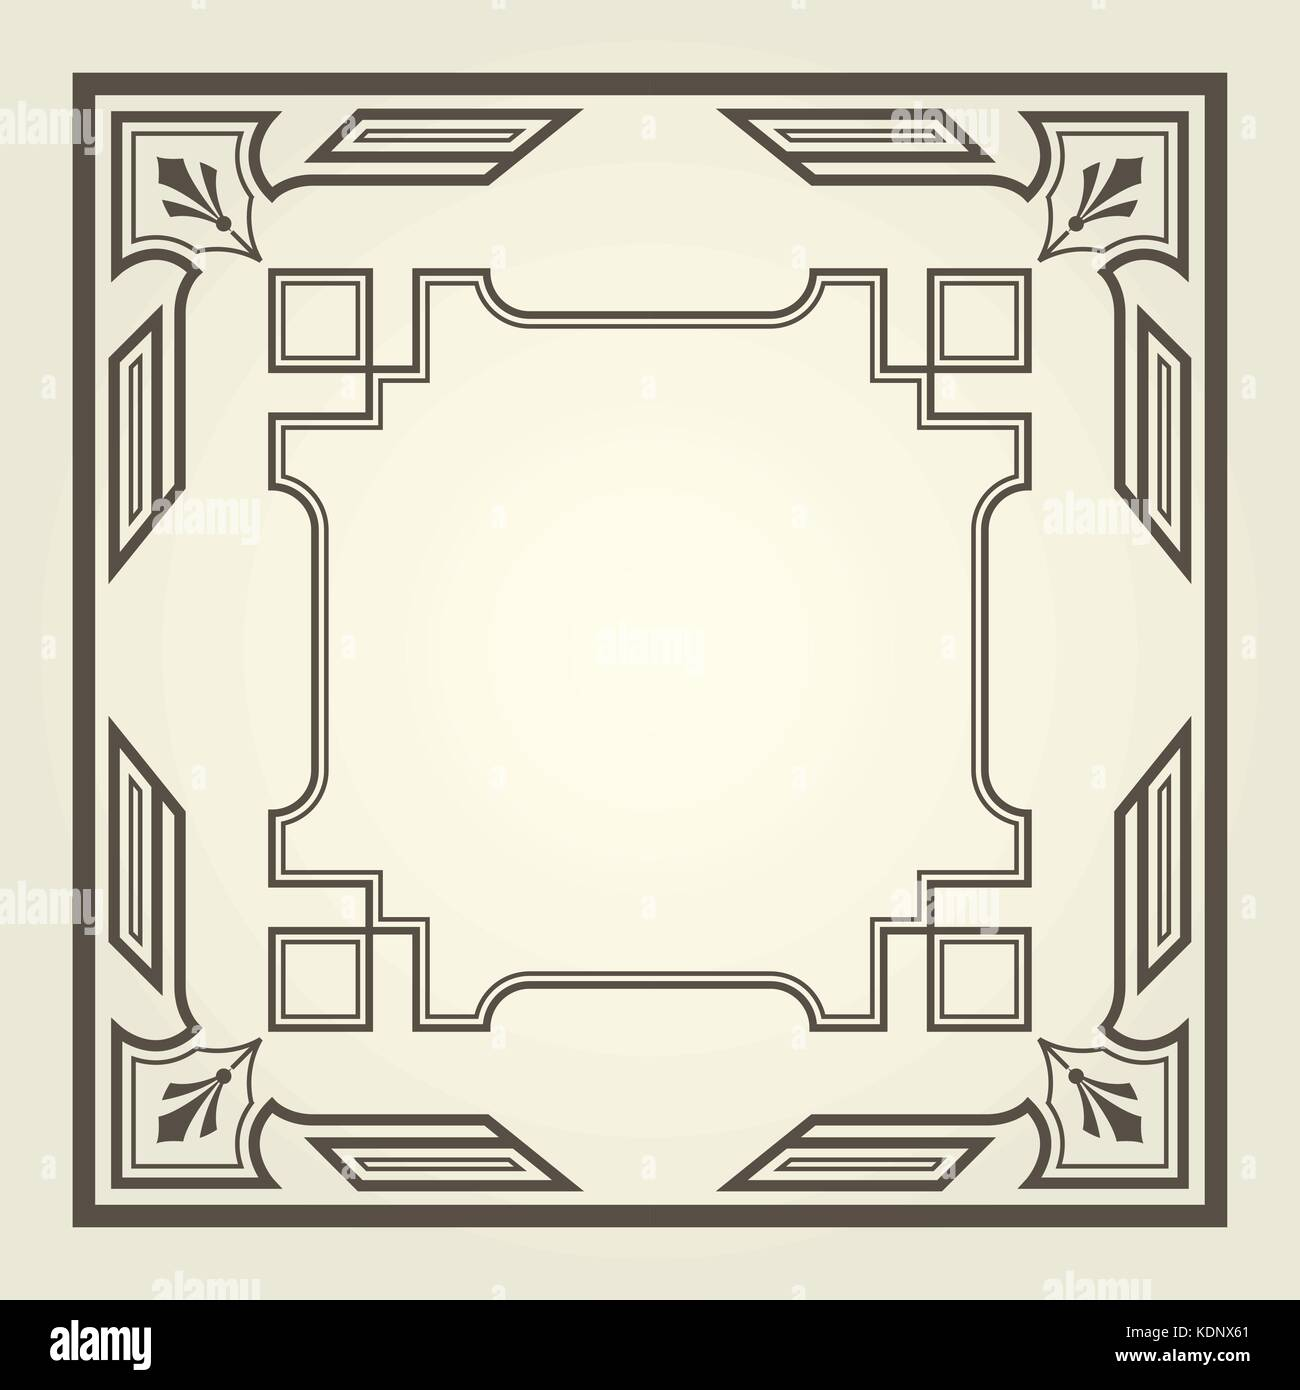 Art Deco Style Square Frame With Stright Lines Stock Vector Art